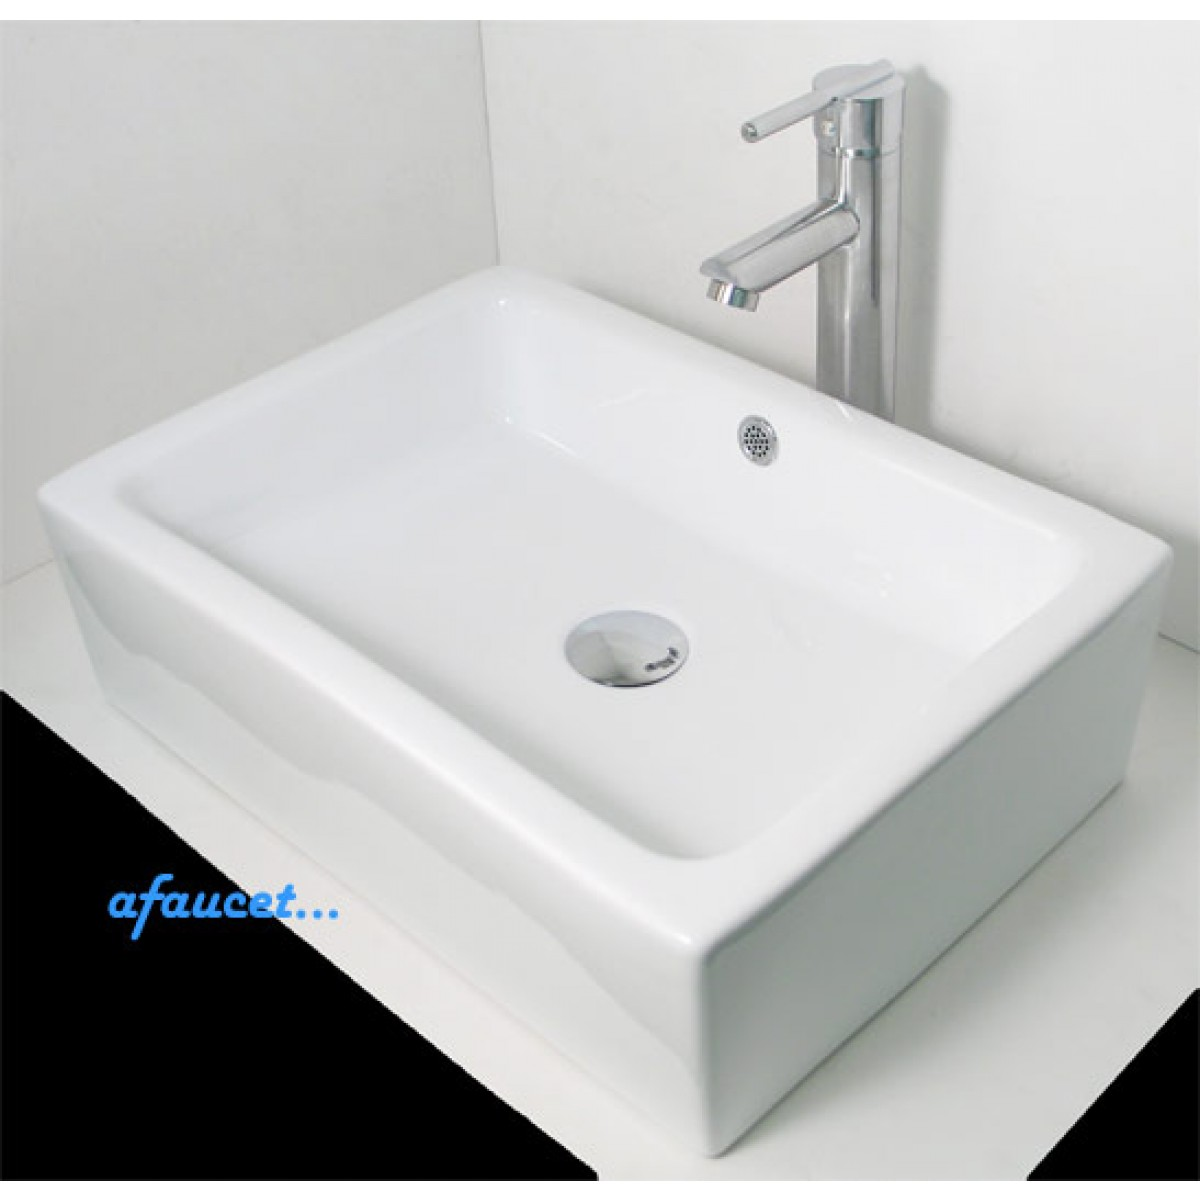 rectangular white black porcelain ceramic bathroom vessel sink 20 x 14 x 5 inch